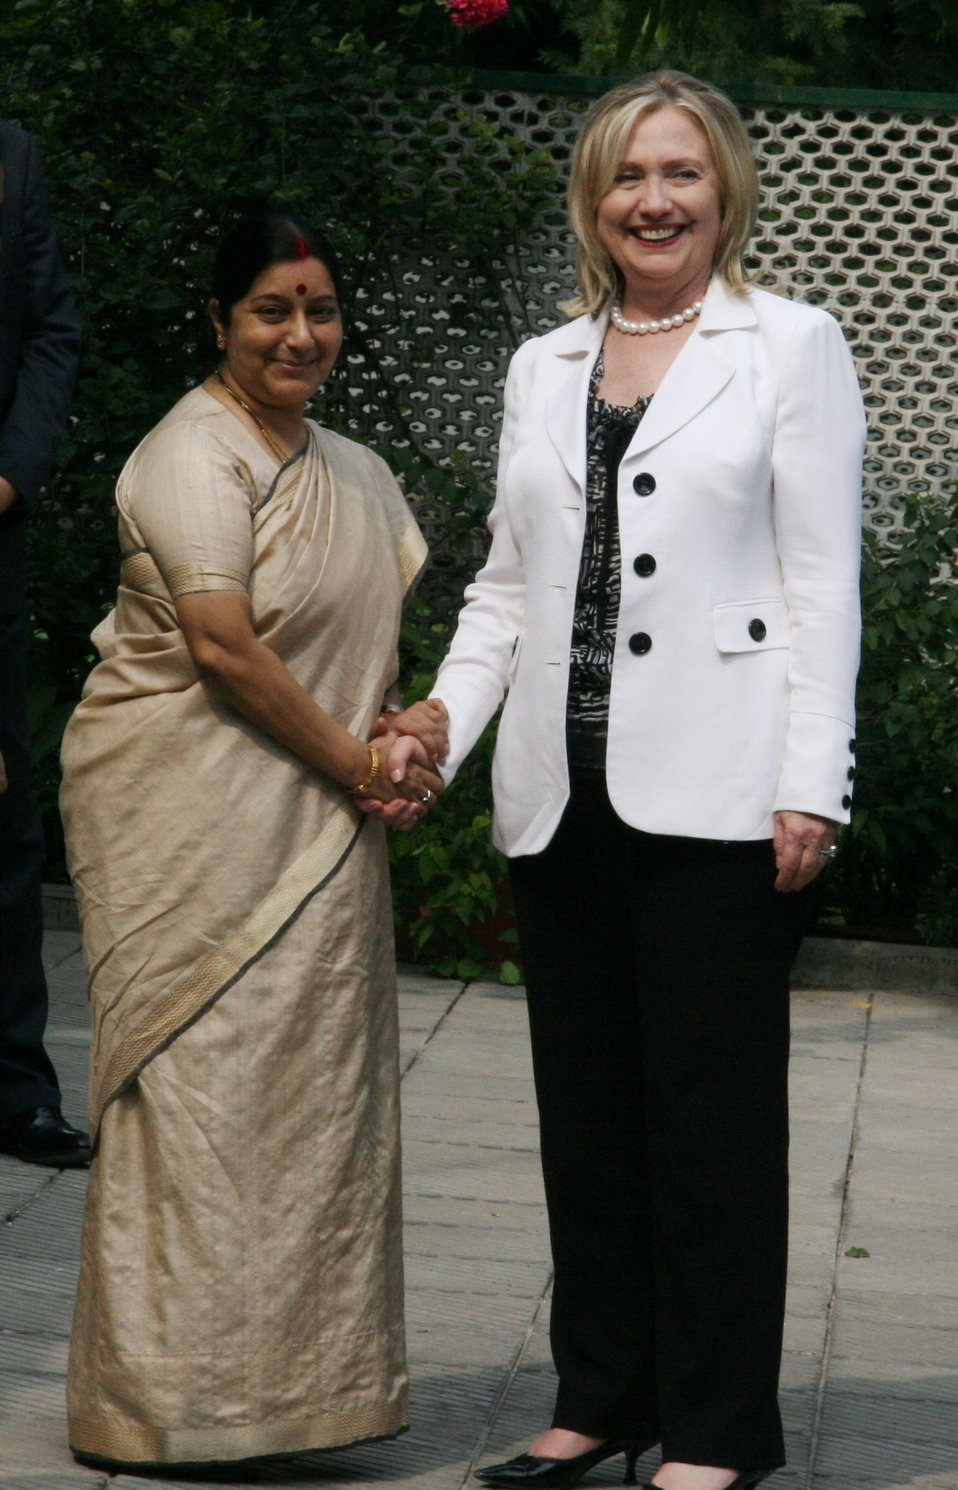 Secretary Clinton Shakes Hands With India's Opposition Leader Swaraj